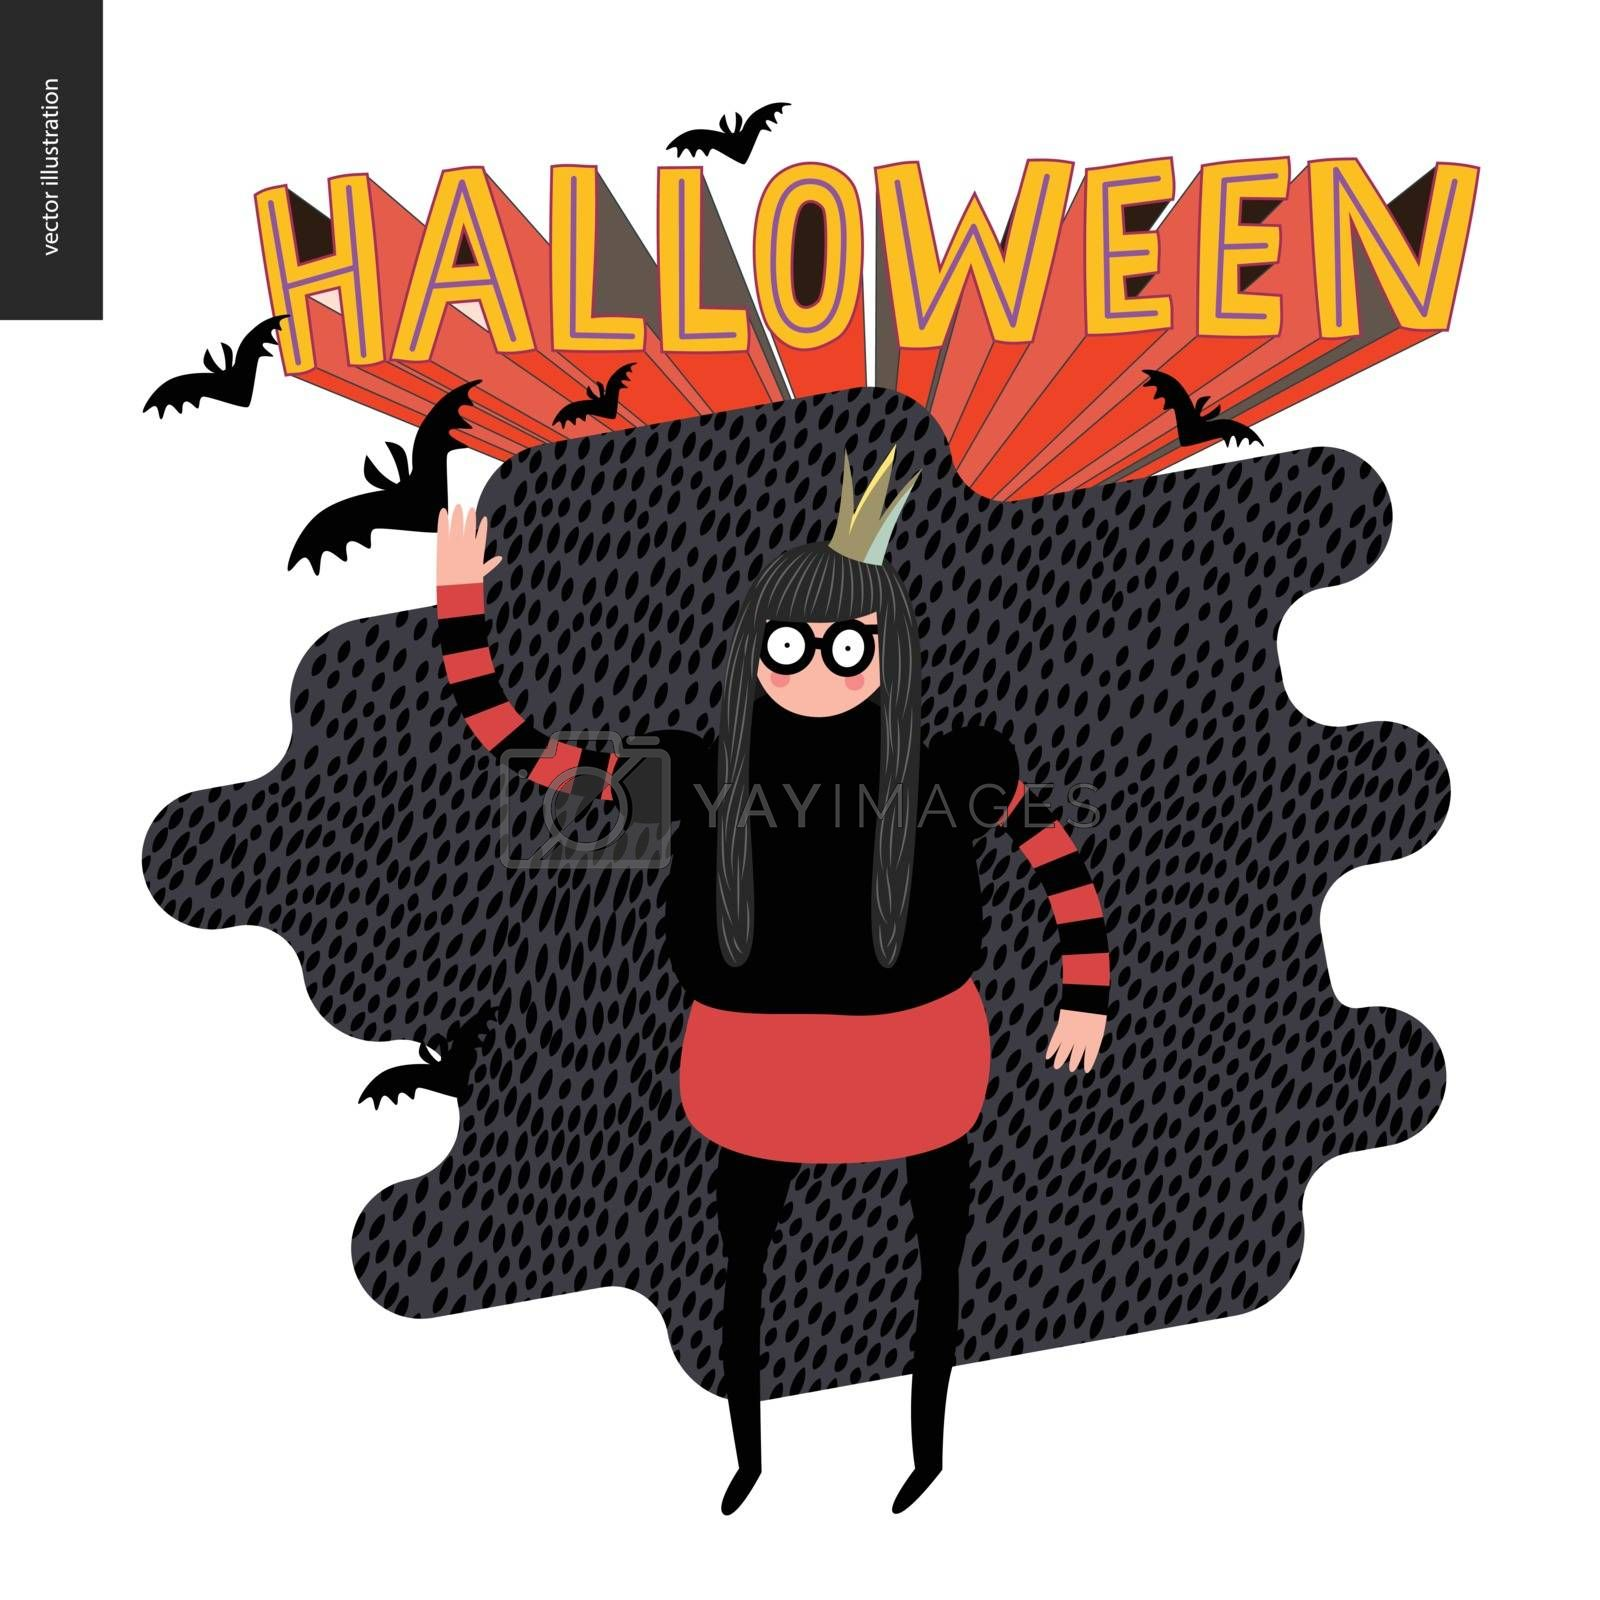 Halloween illustration with a waving girl. Vector cartoon illustration of a girl wearing a princess costume with a crown, and flying bats, with a lettering Halloween